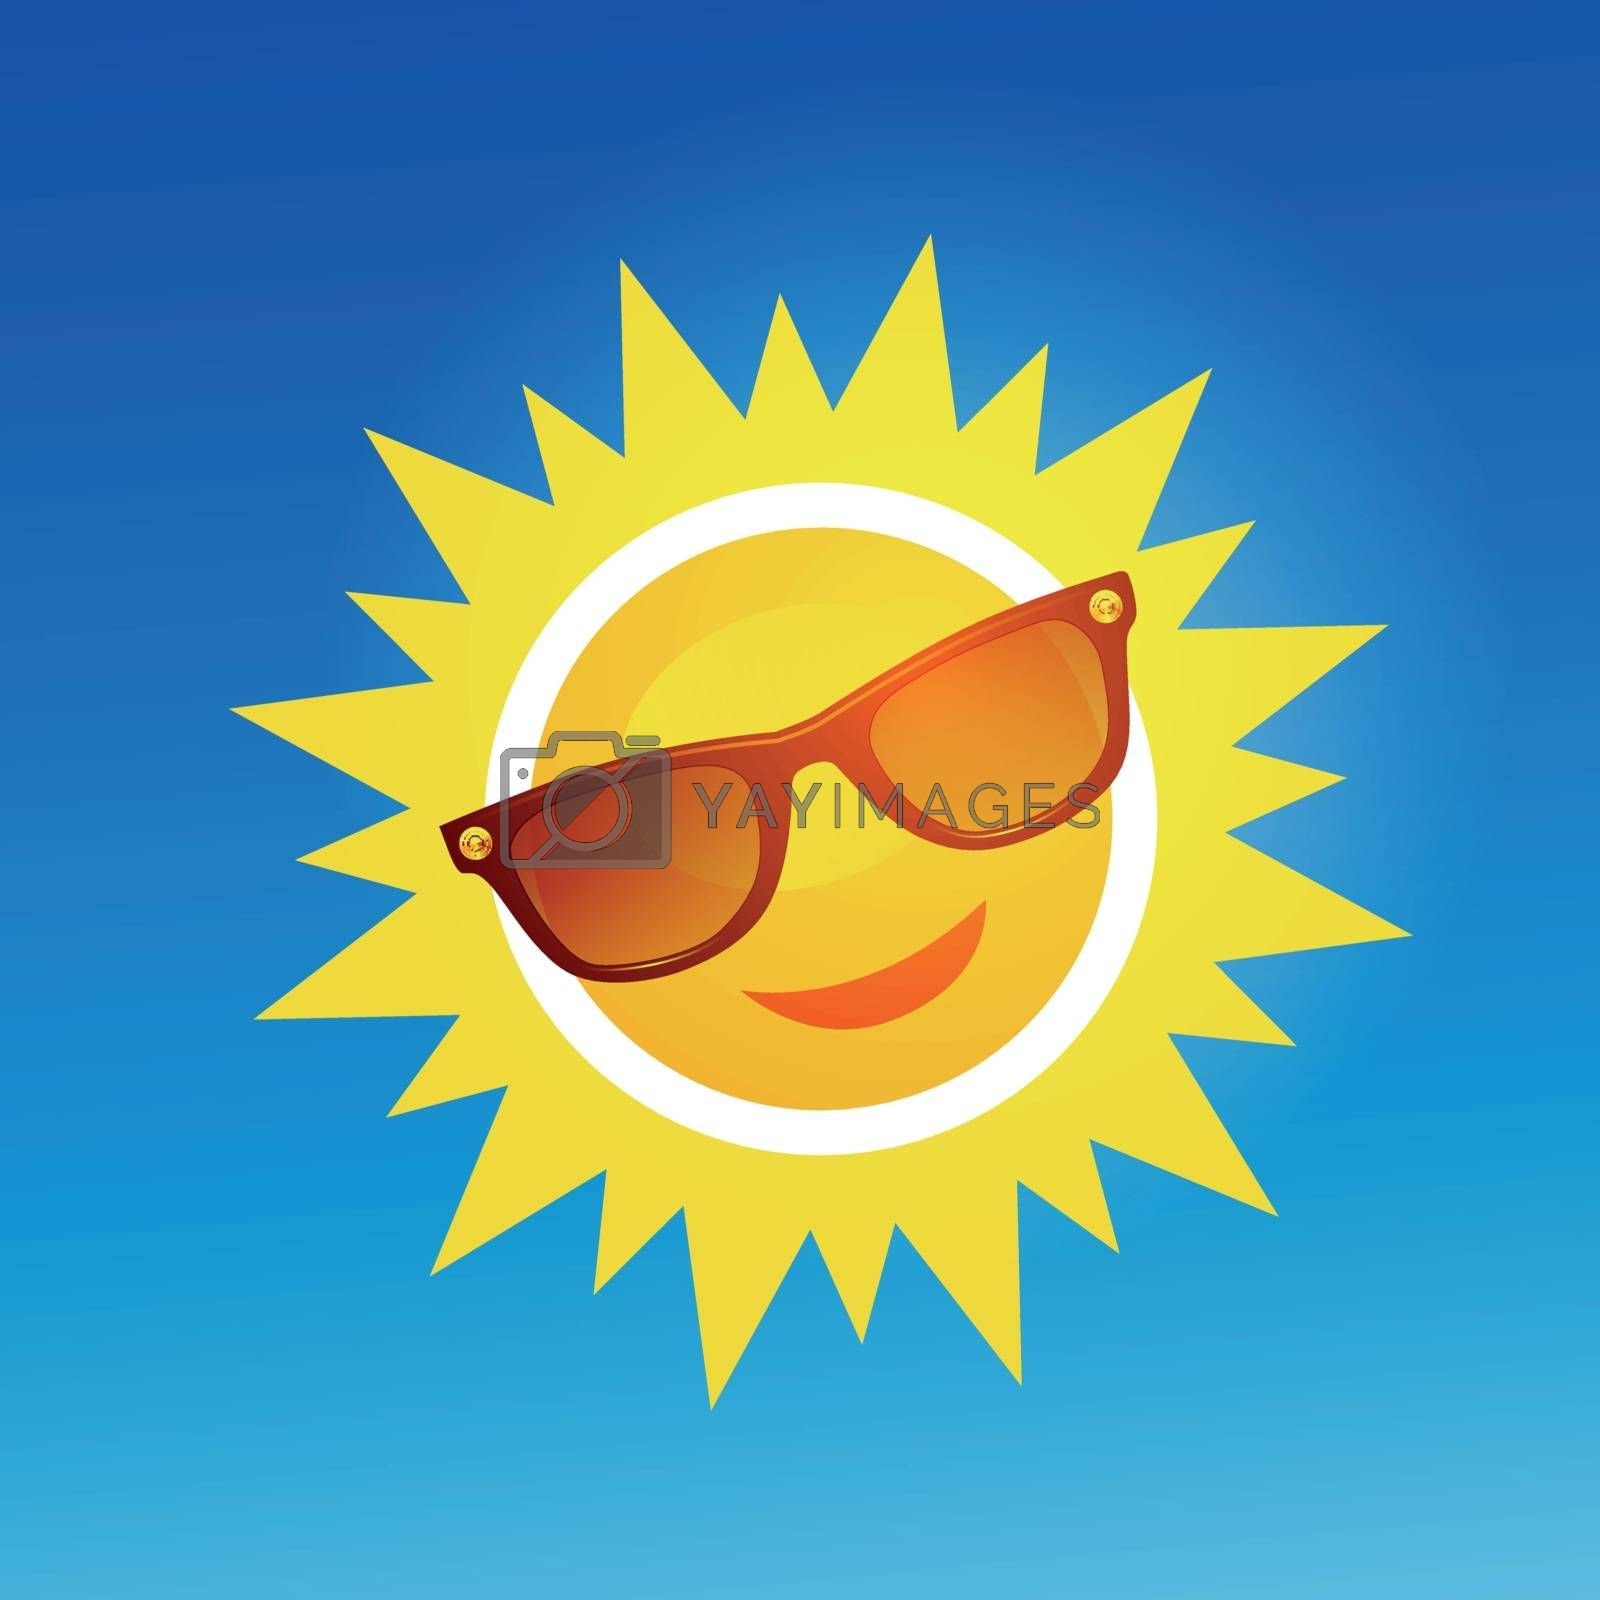 Royalty free image of Cheerful, smiling cartoon sun in sunglasses on blue background. by sermax55